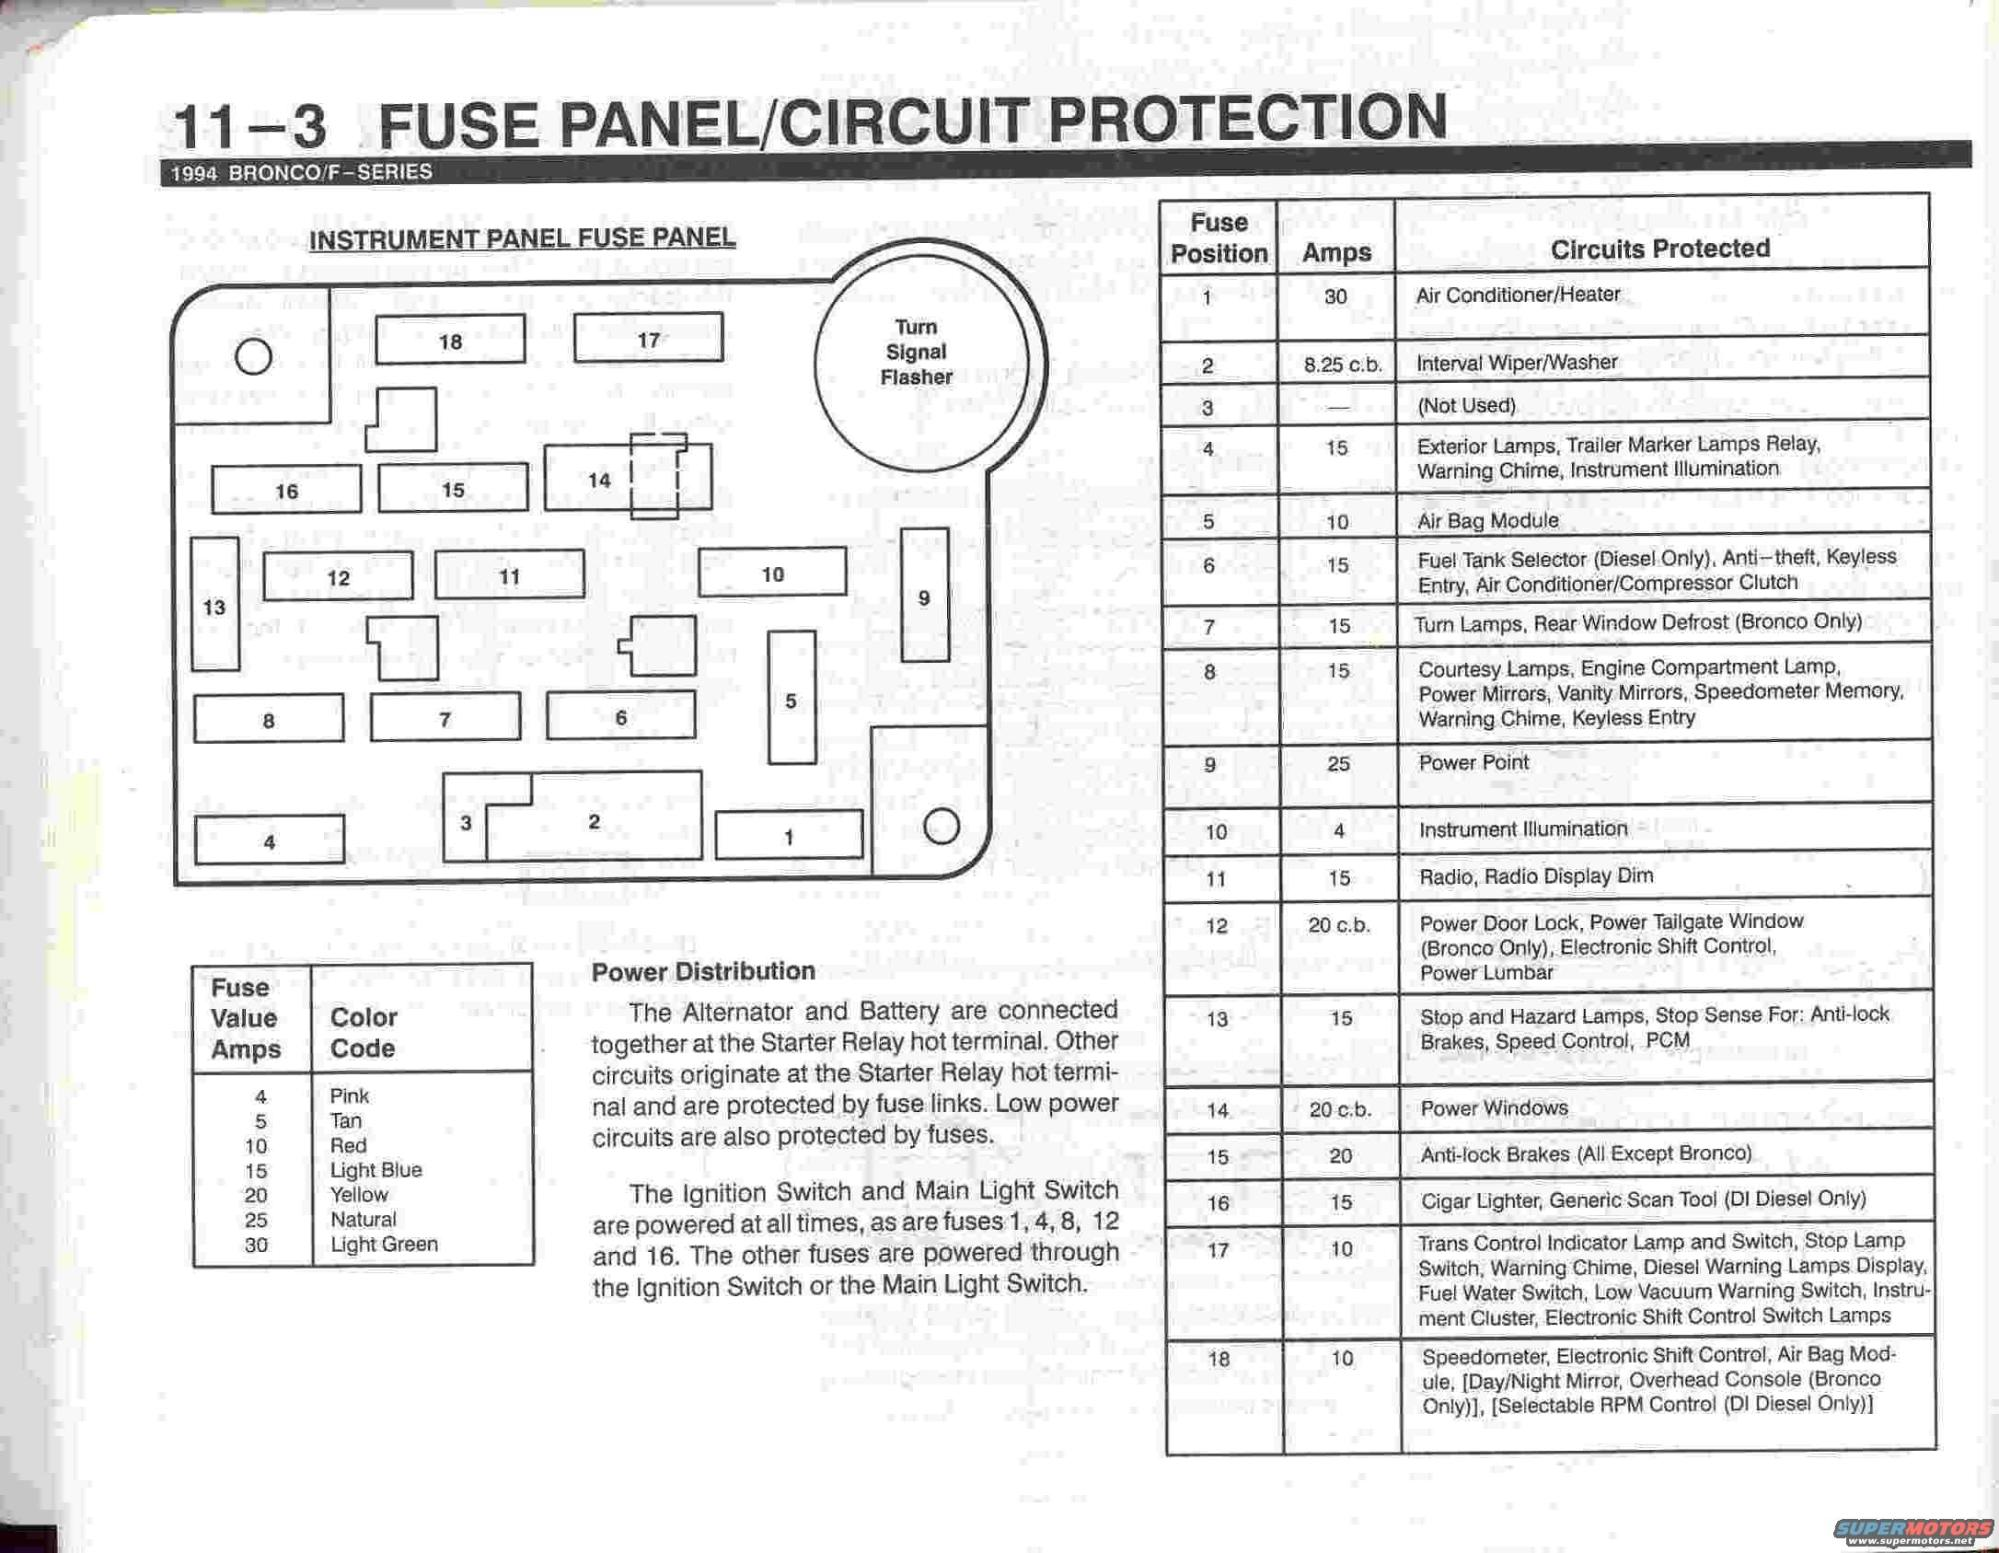 hight resolution of 1993 ford bronco fuse panel diagram wiring diagram expert 1993 ford bronco fuse box diagram wiring